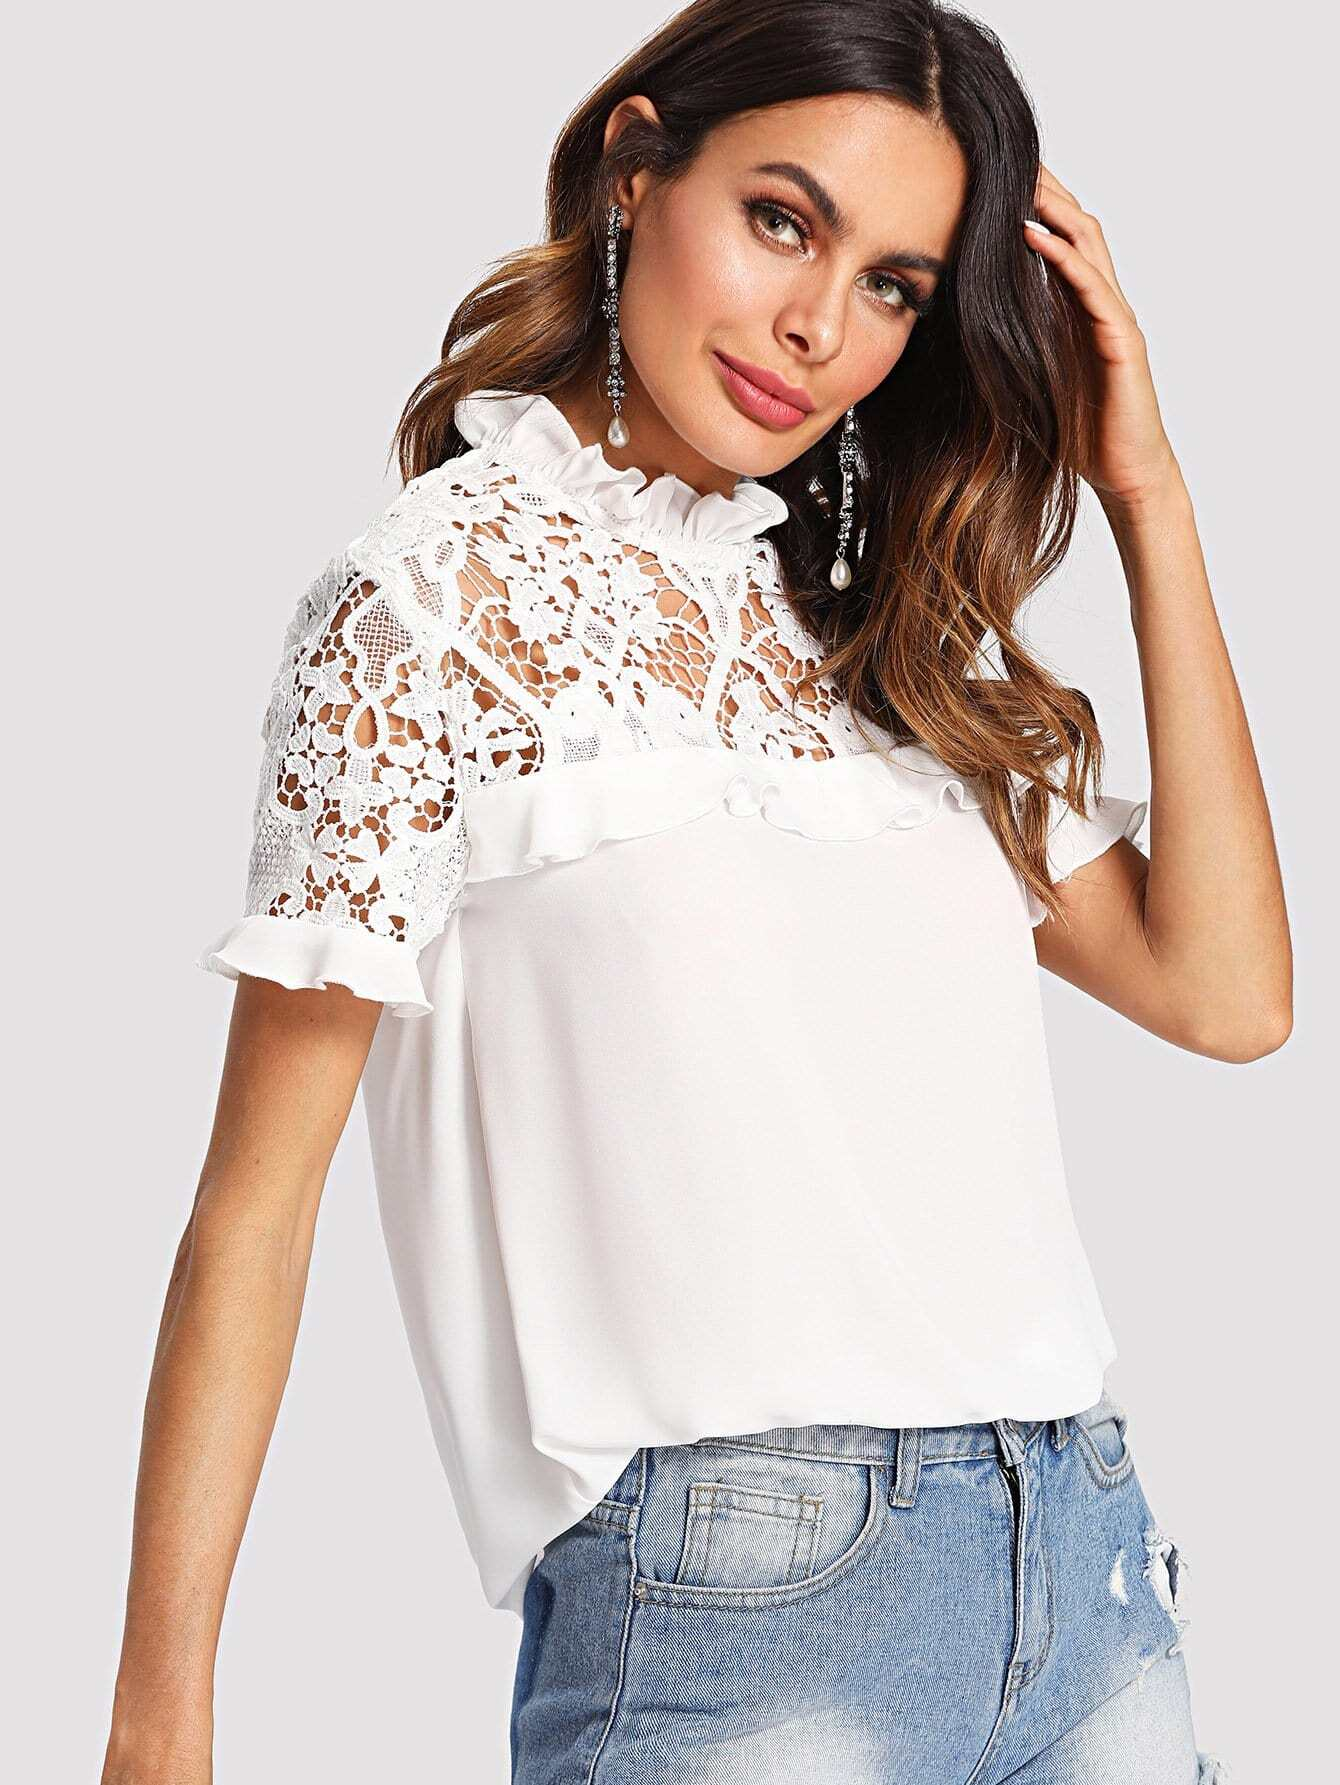 Floral Lace Yoke Ruffle Trim Top knot front floral lace yoke top